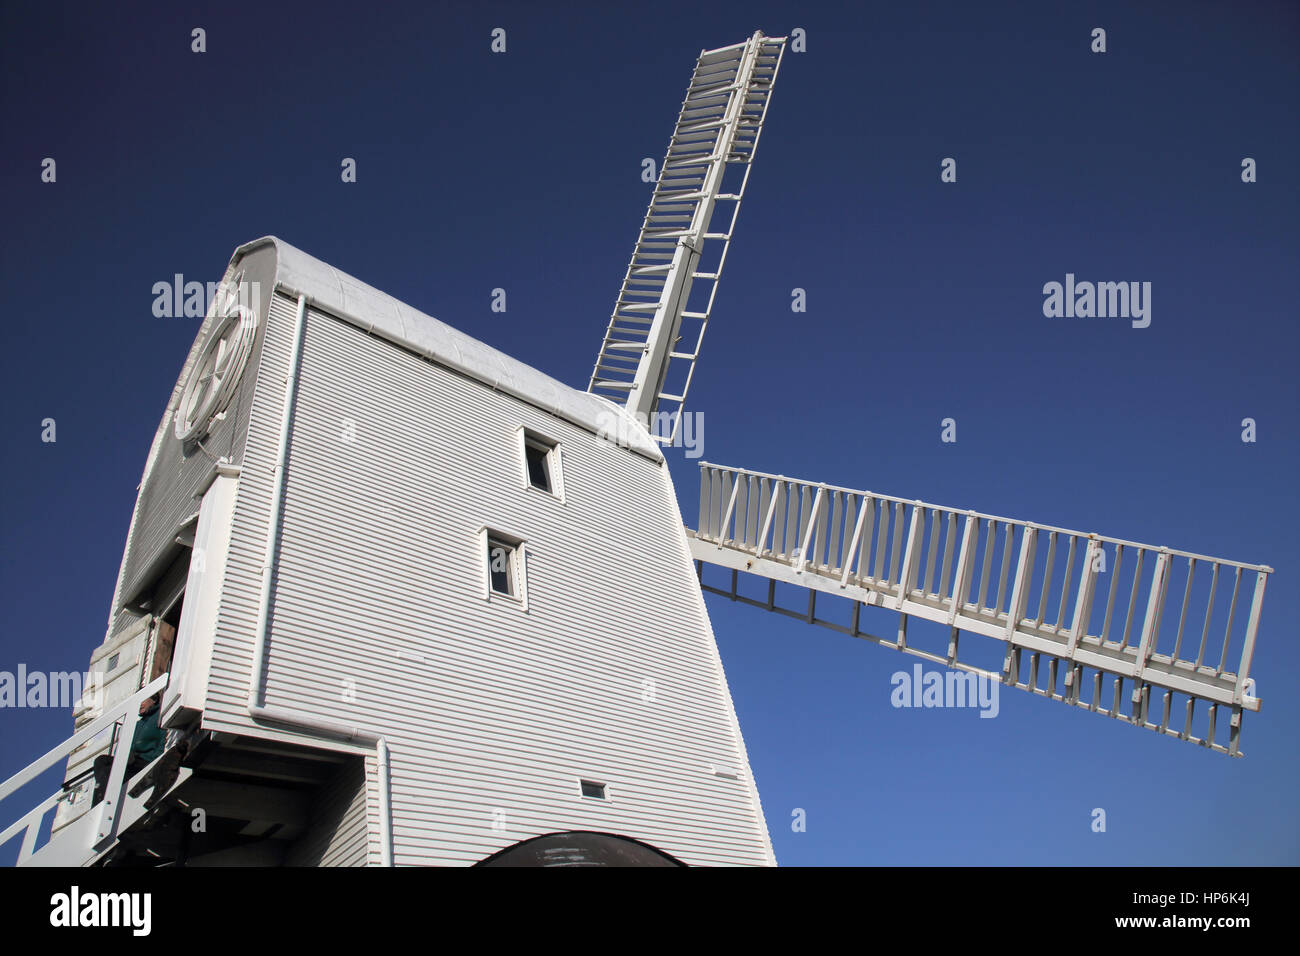 jack and jill windmills at clayton on the sussex downs - Stock Image